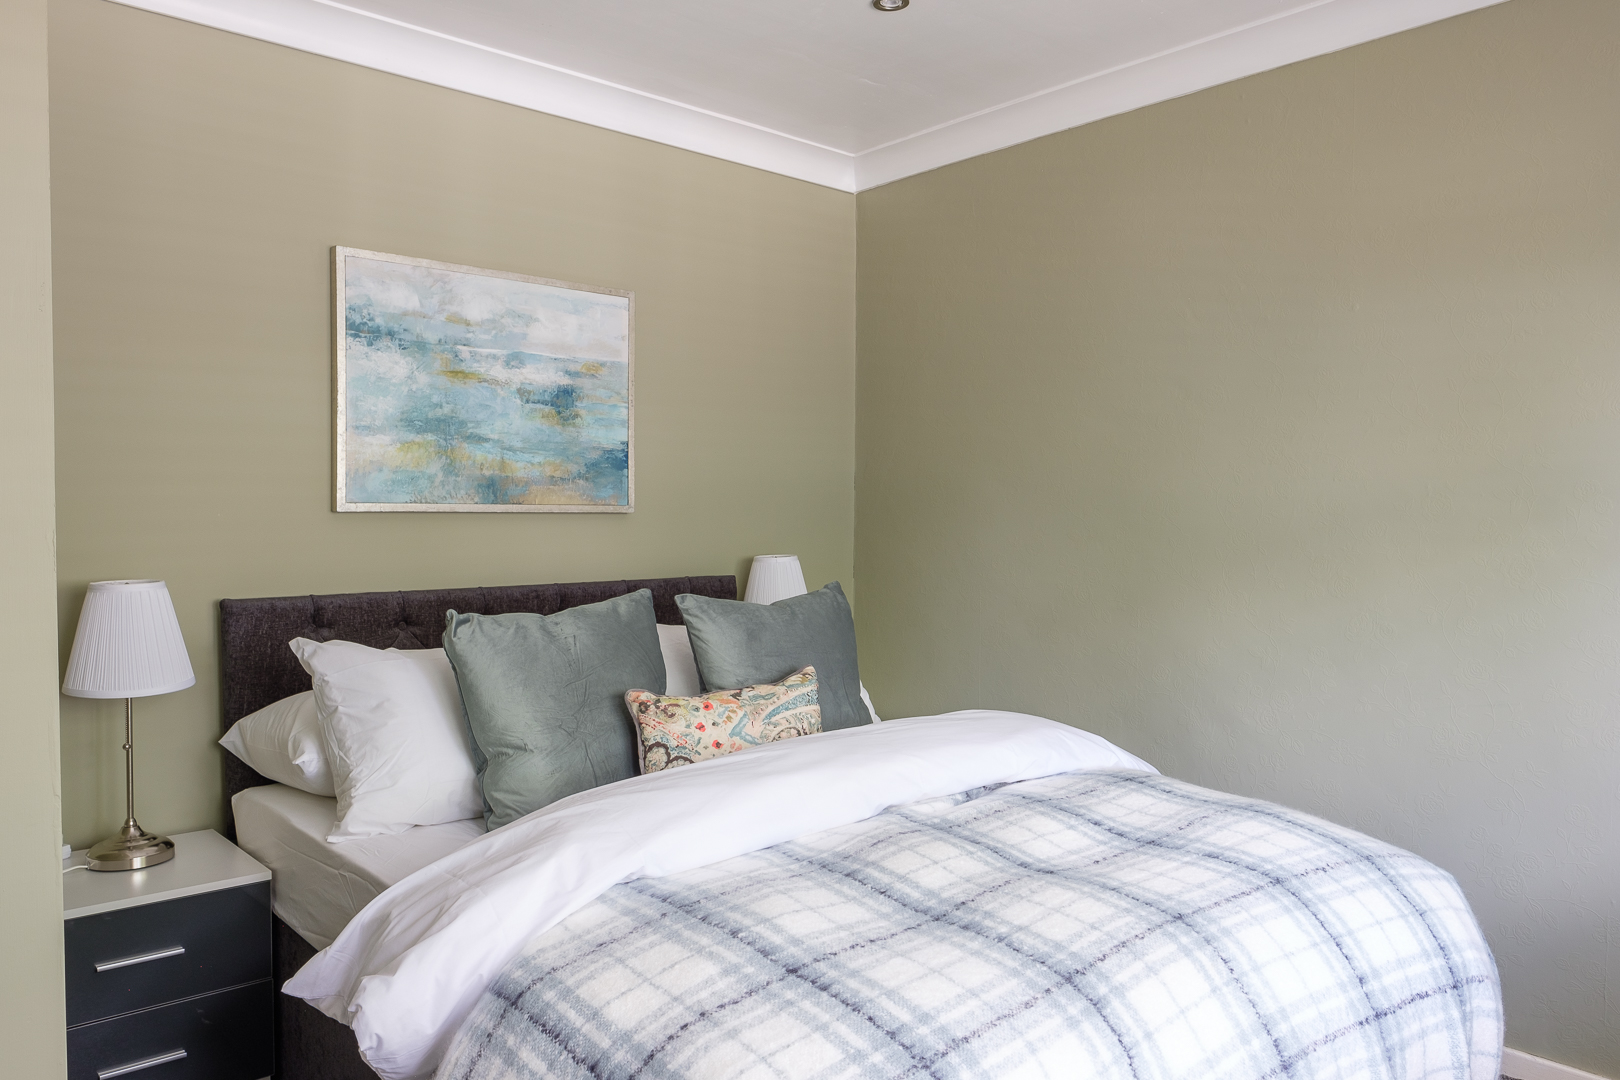 Bed at Dickens House, Tilgate, Crawley